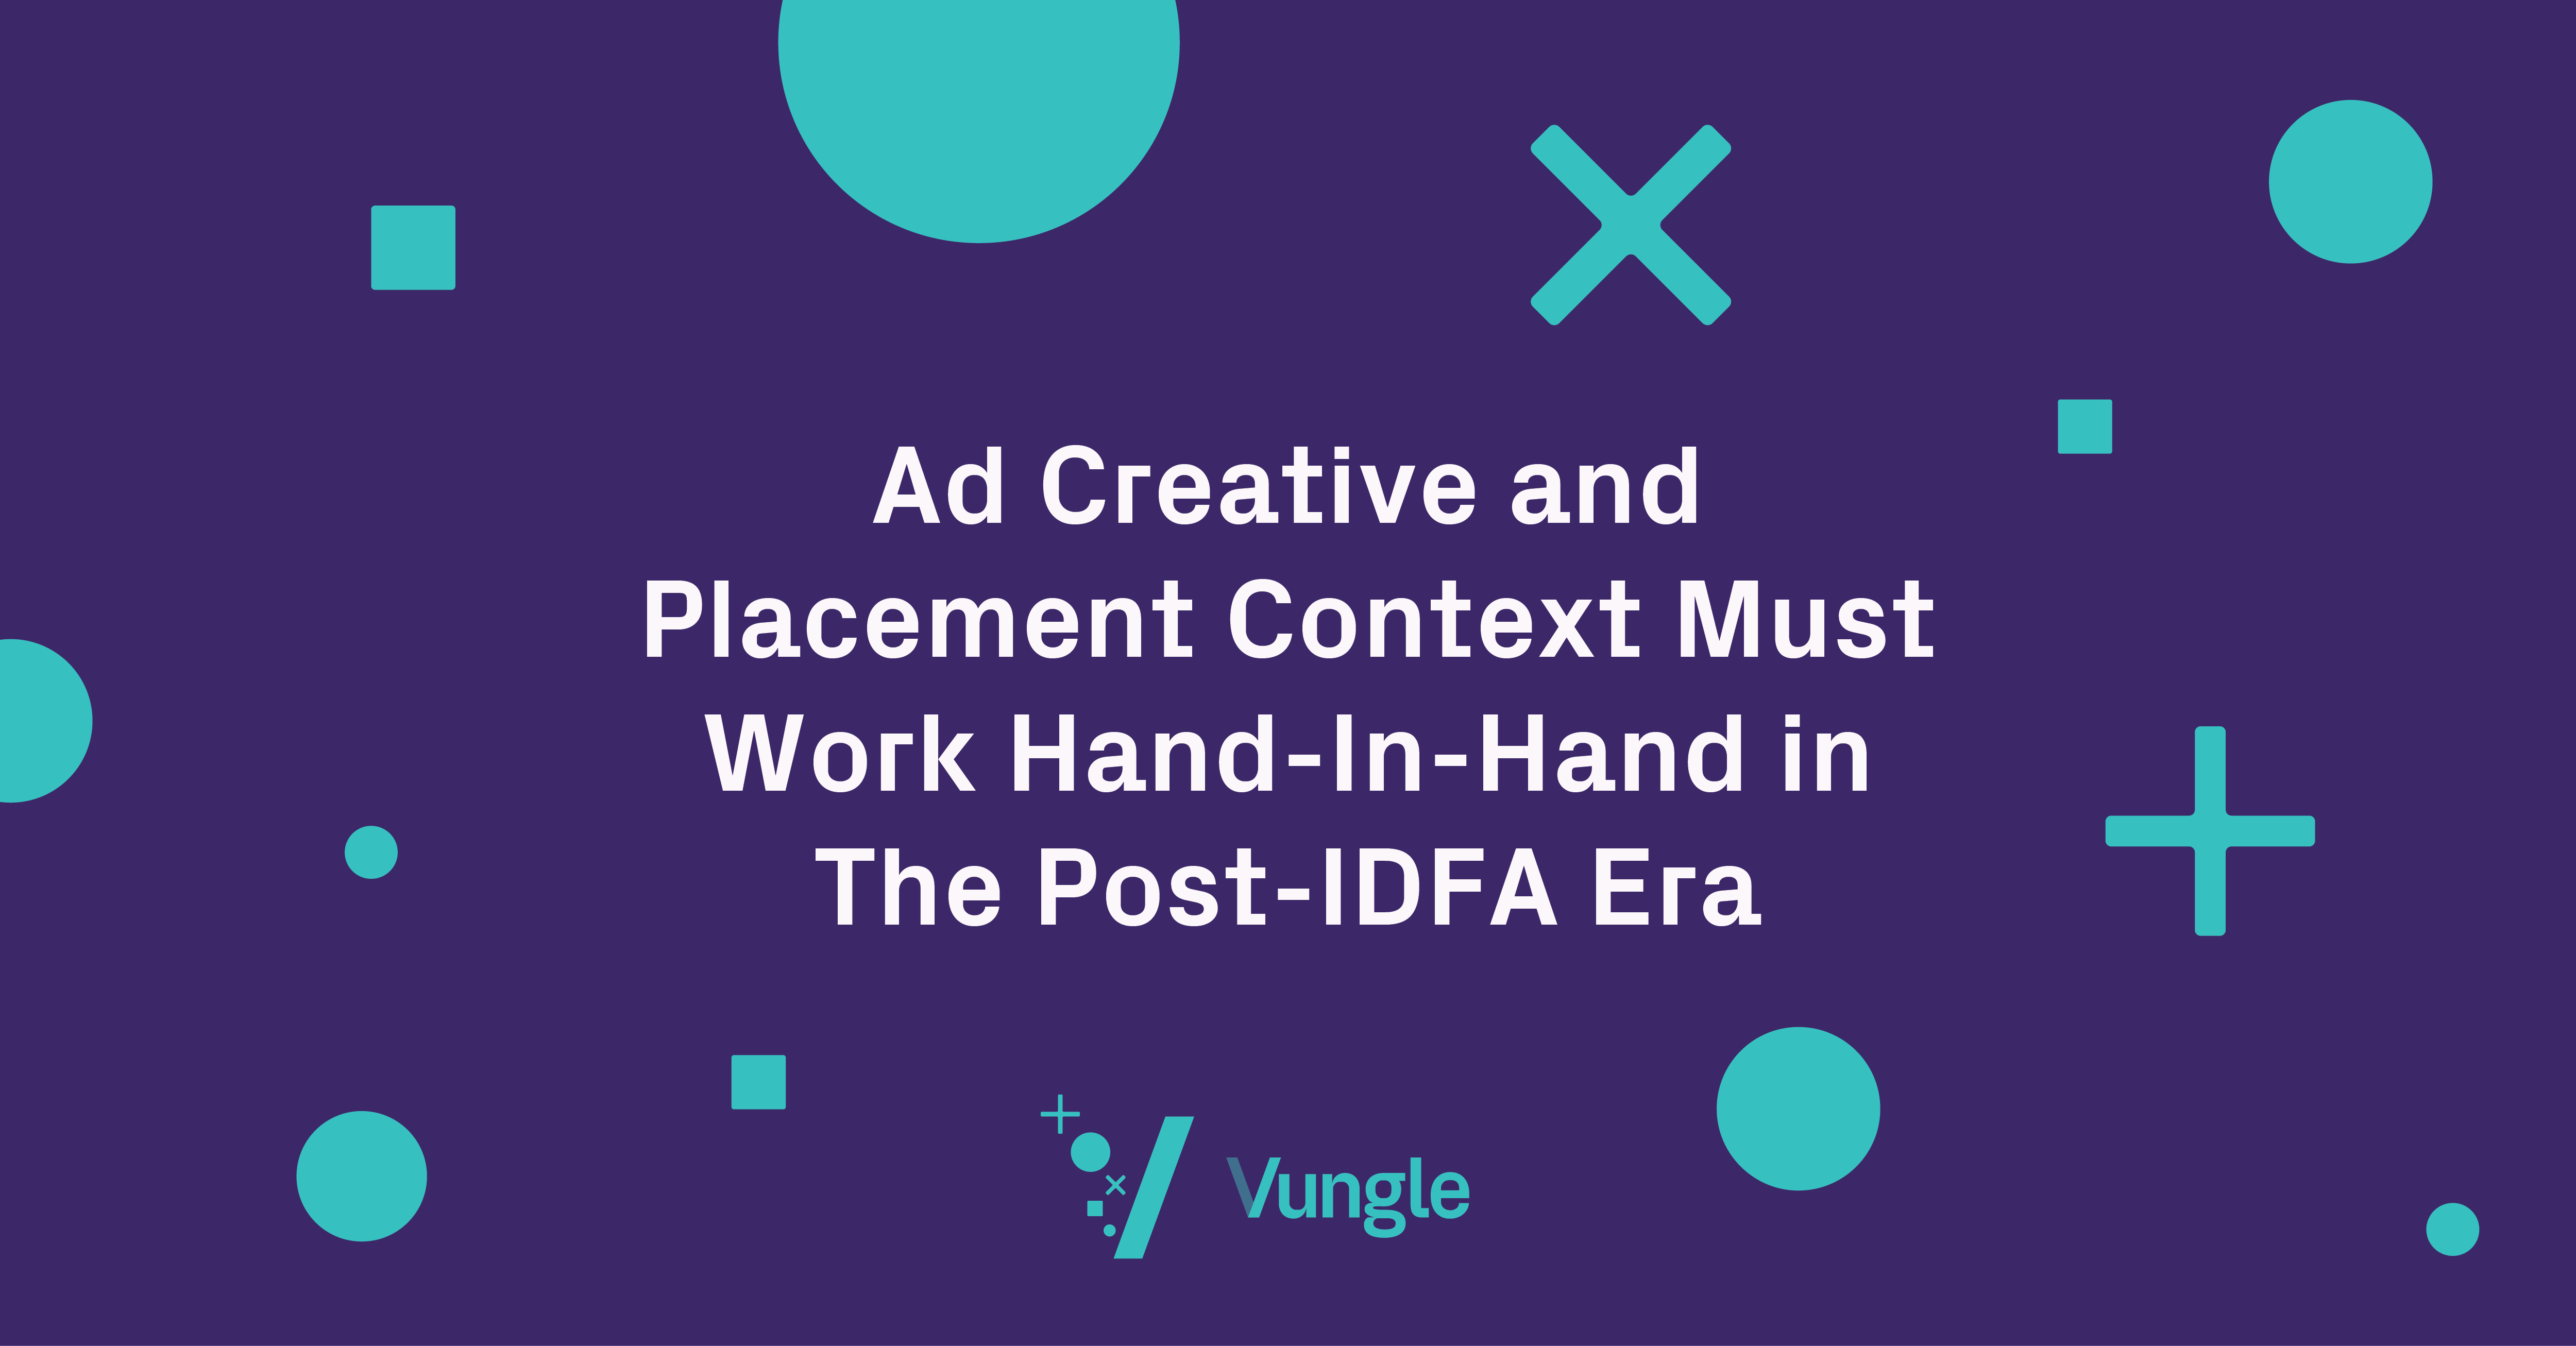 AdExchanger: Ad Creative and Placement Context Must Work Hand-In-Hand in the Post-IDFA Era